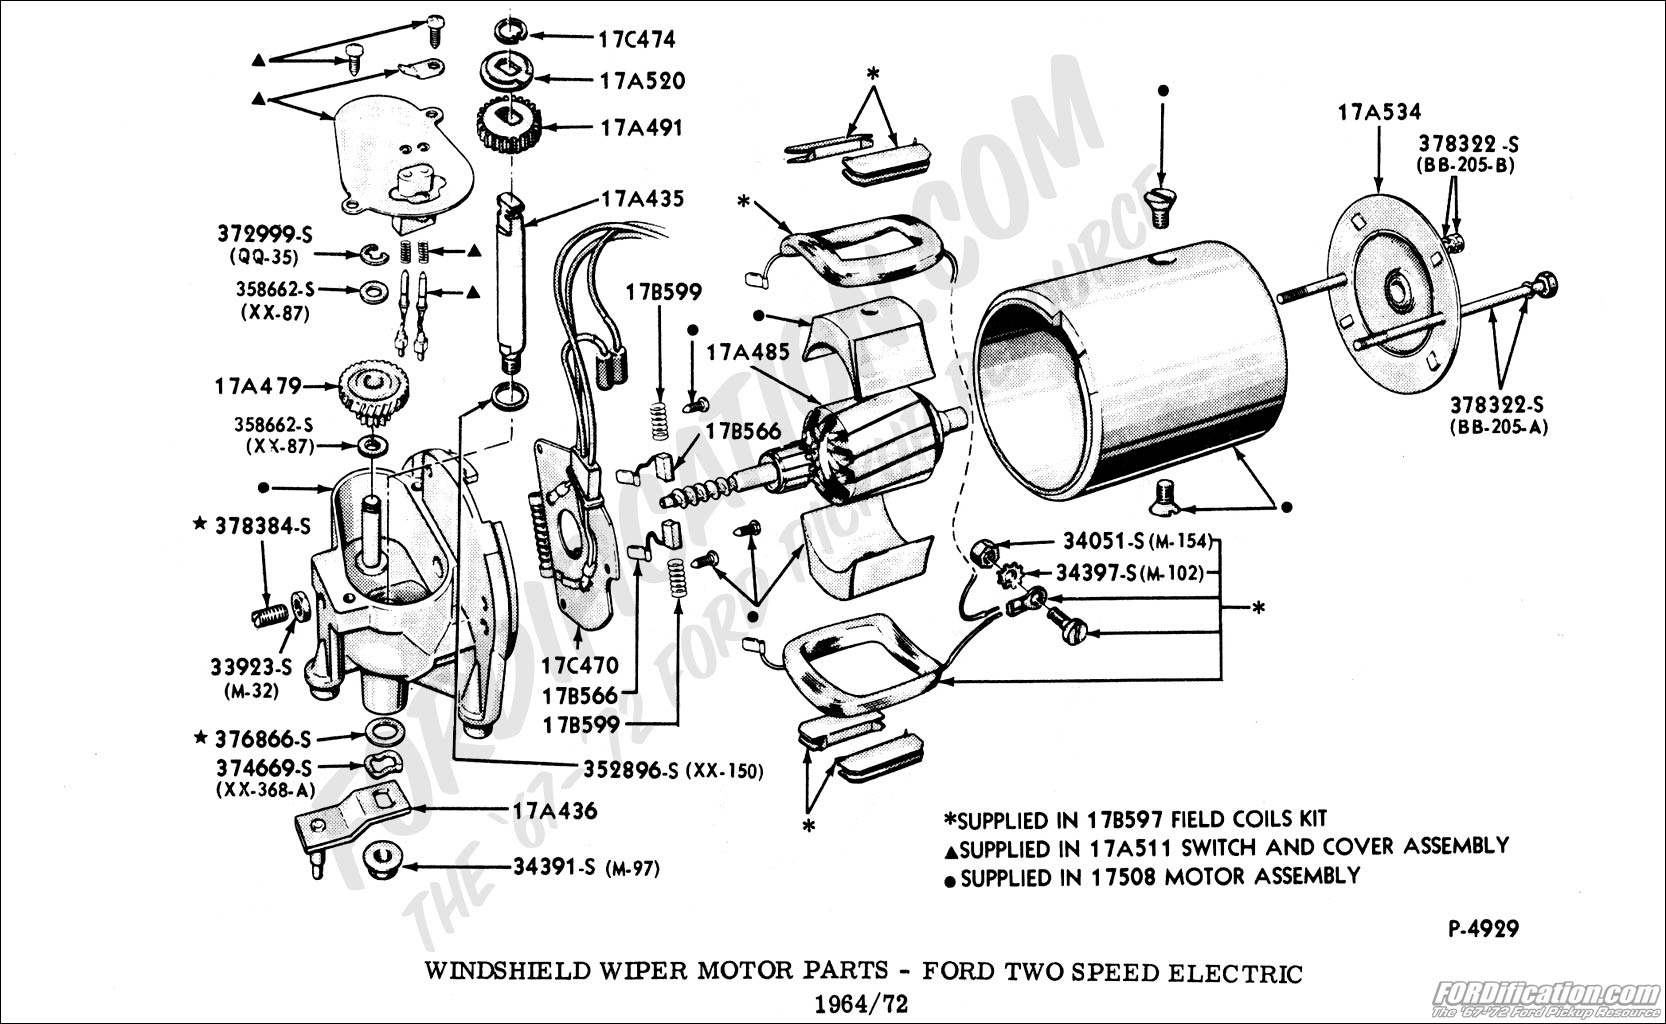 Windshield Wiper Motor Parts